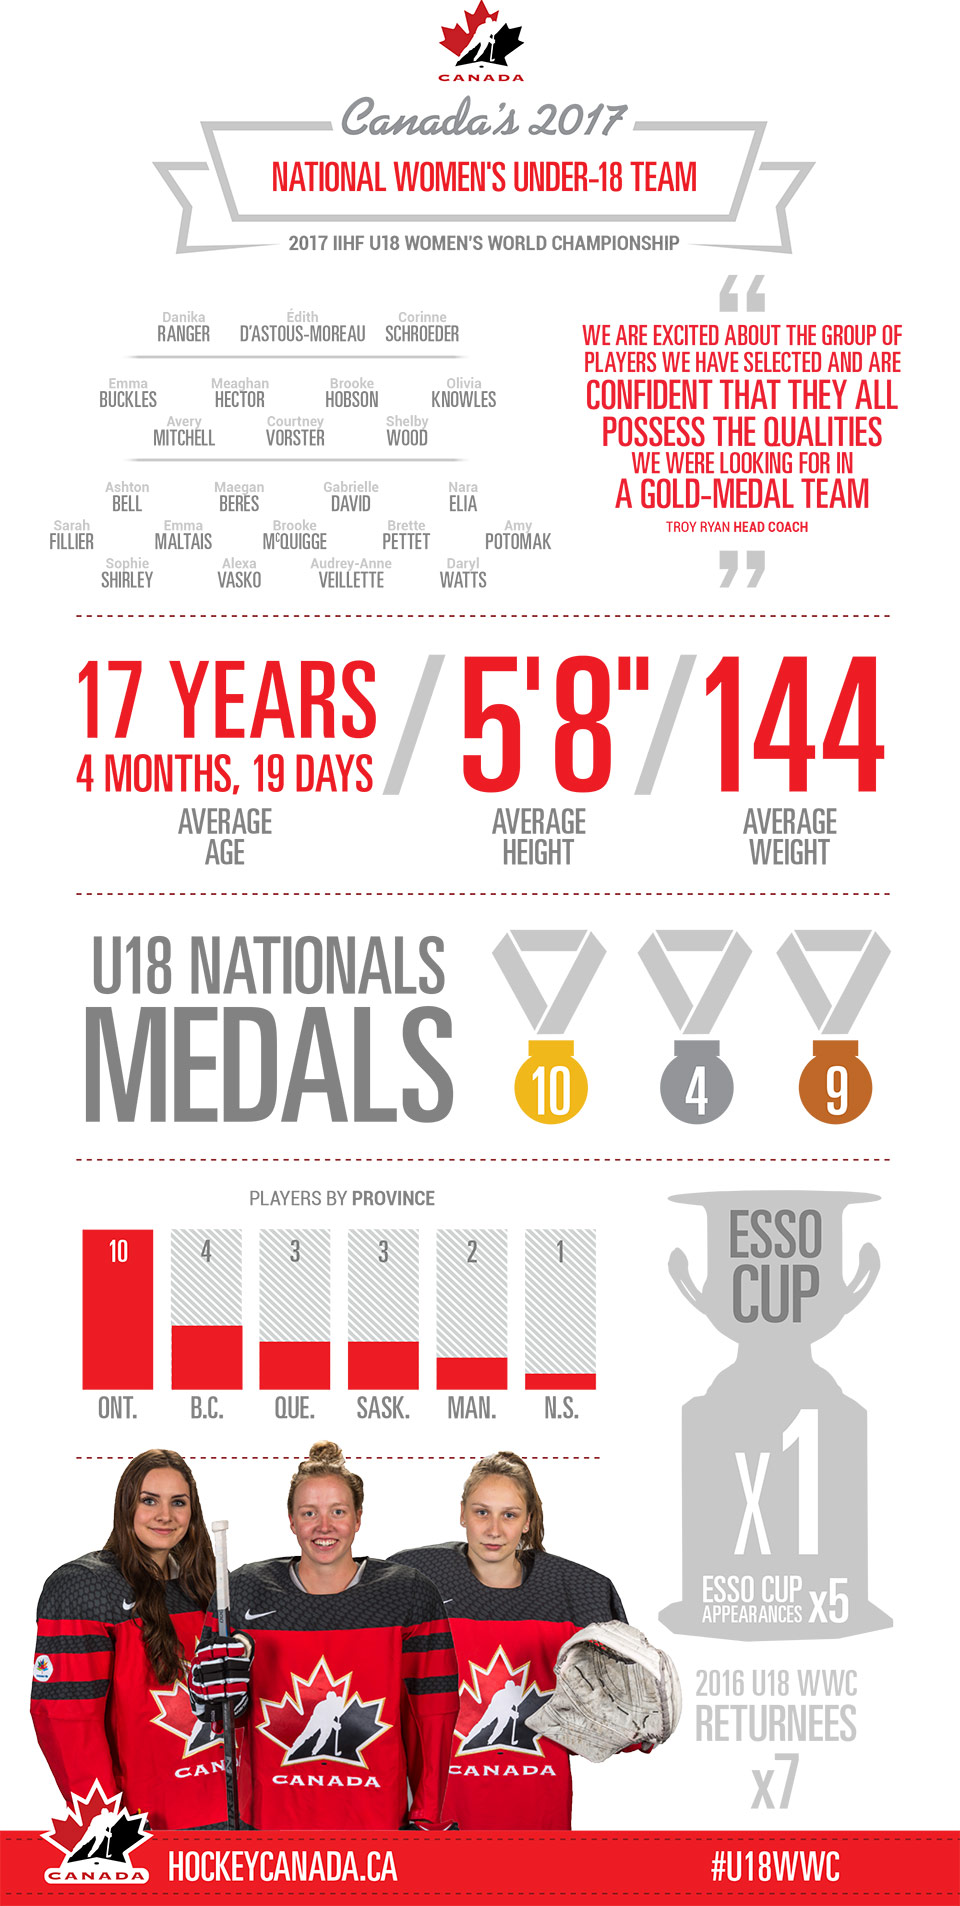 2017 IIHF U18 Women's World Championship - Team Canada Infographic